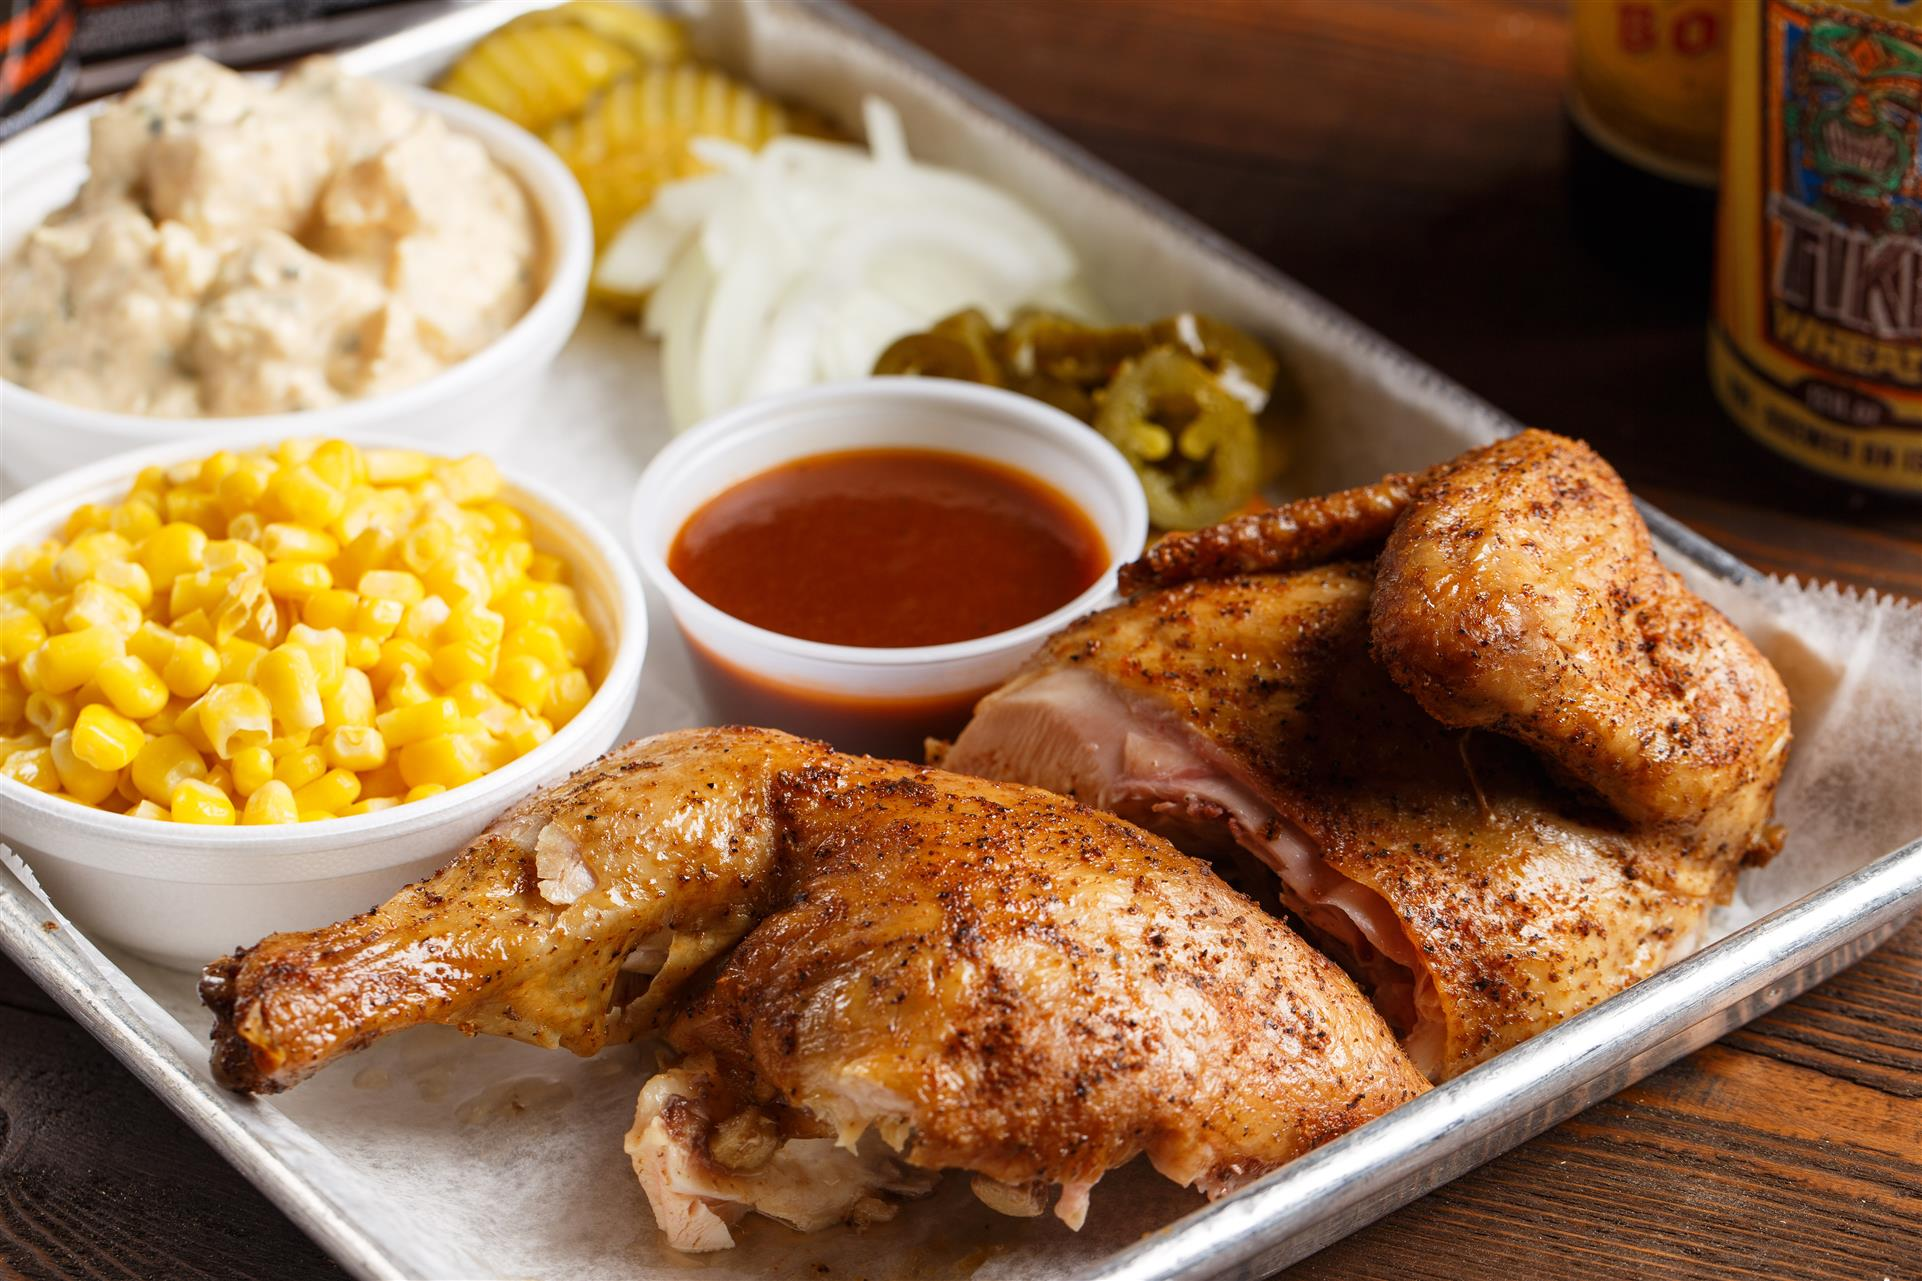 Roasted BBQ chicken with a side of corn and BBQ sauce